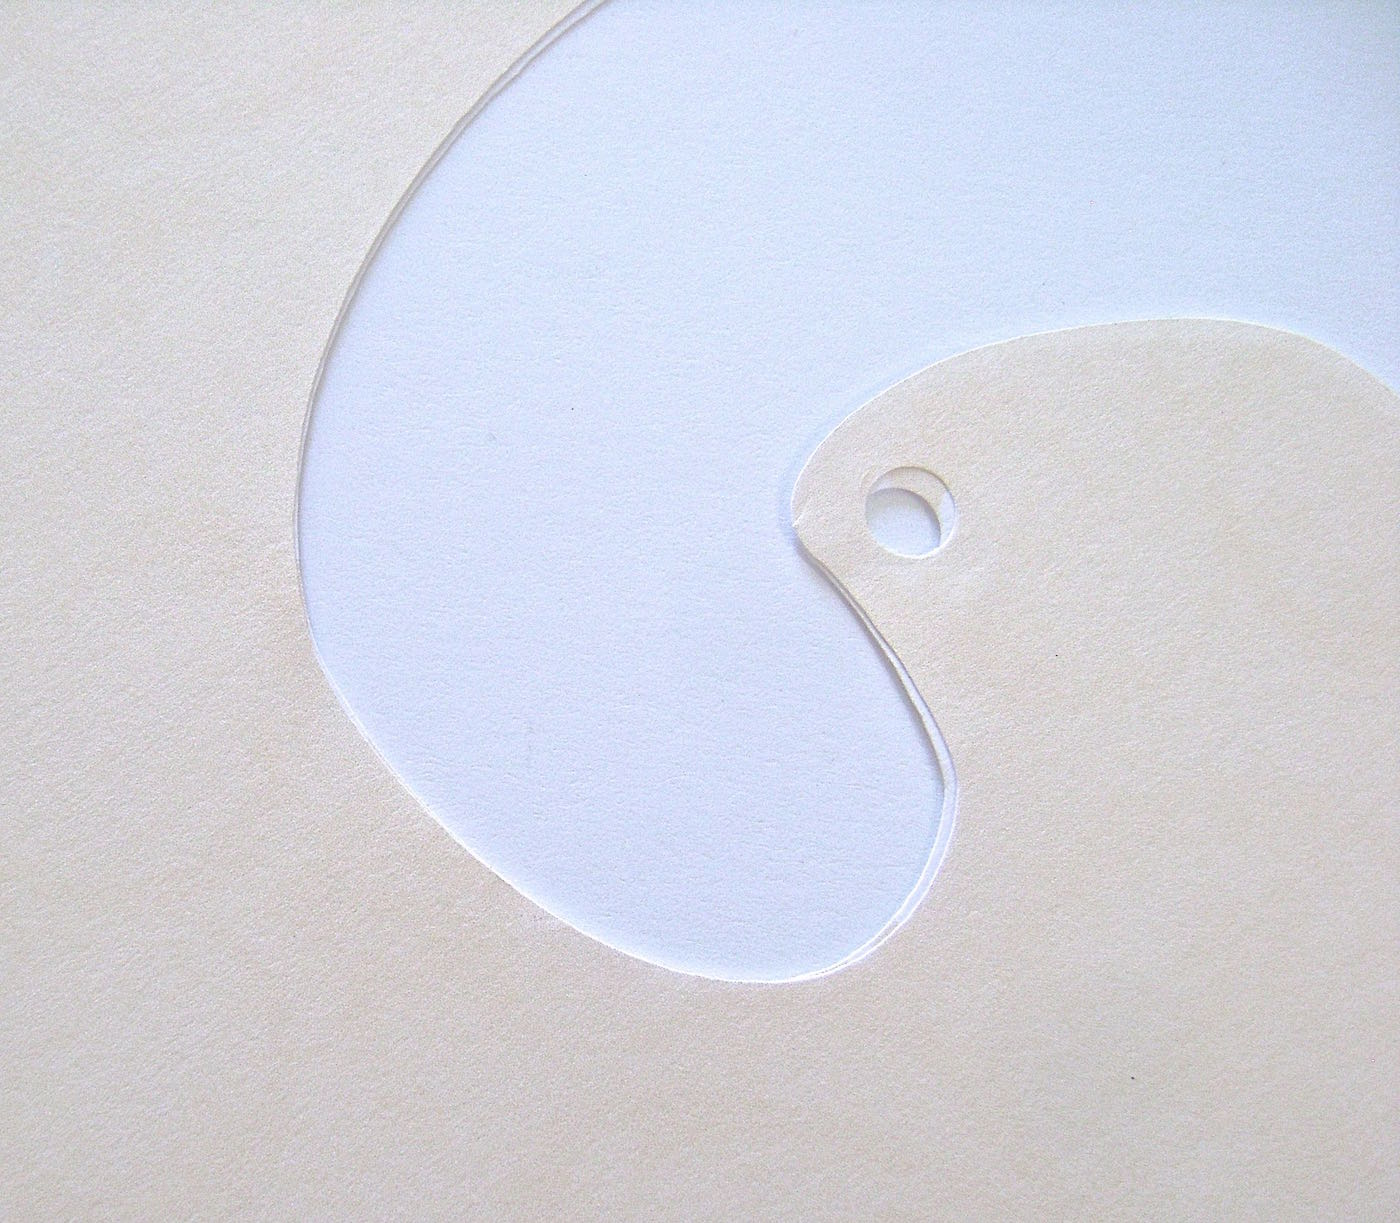 step 4 - Use a paper punch to create a hole through both layers at once.